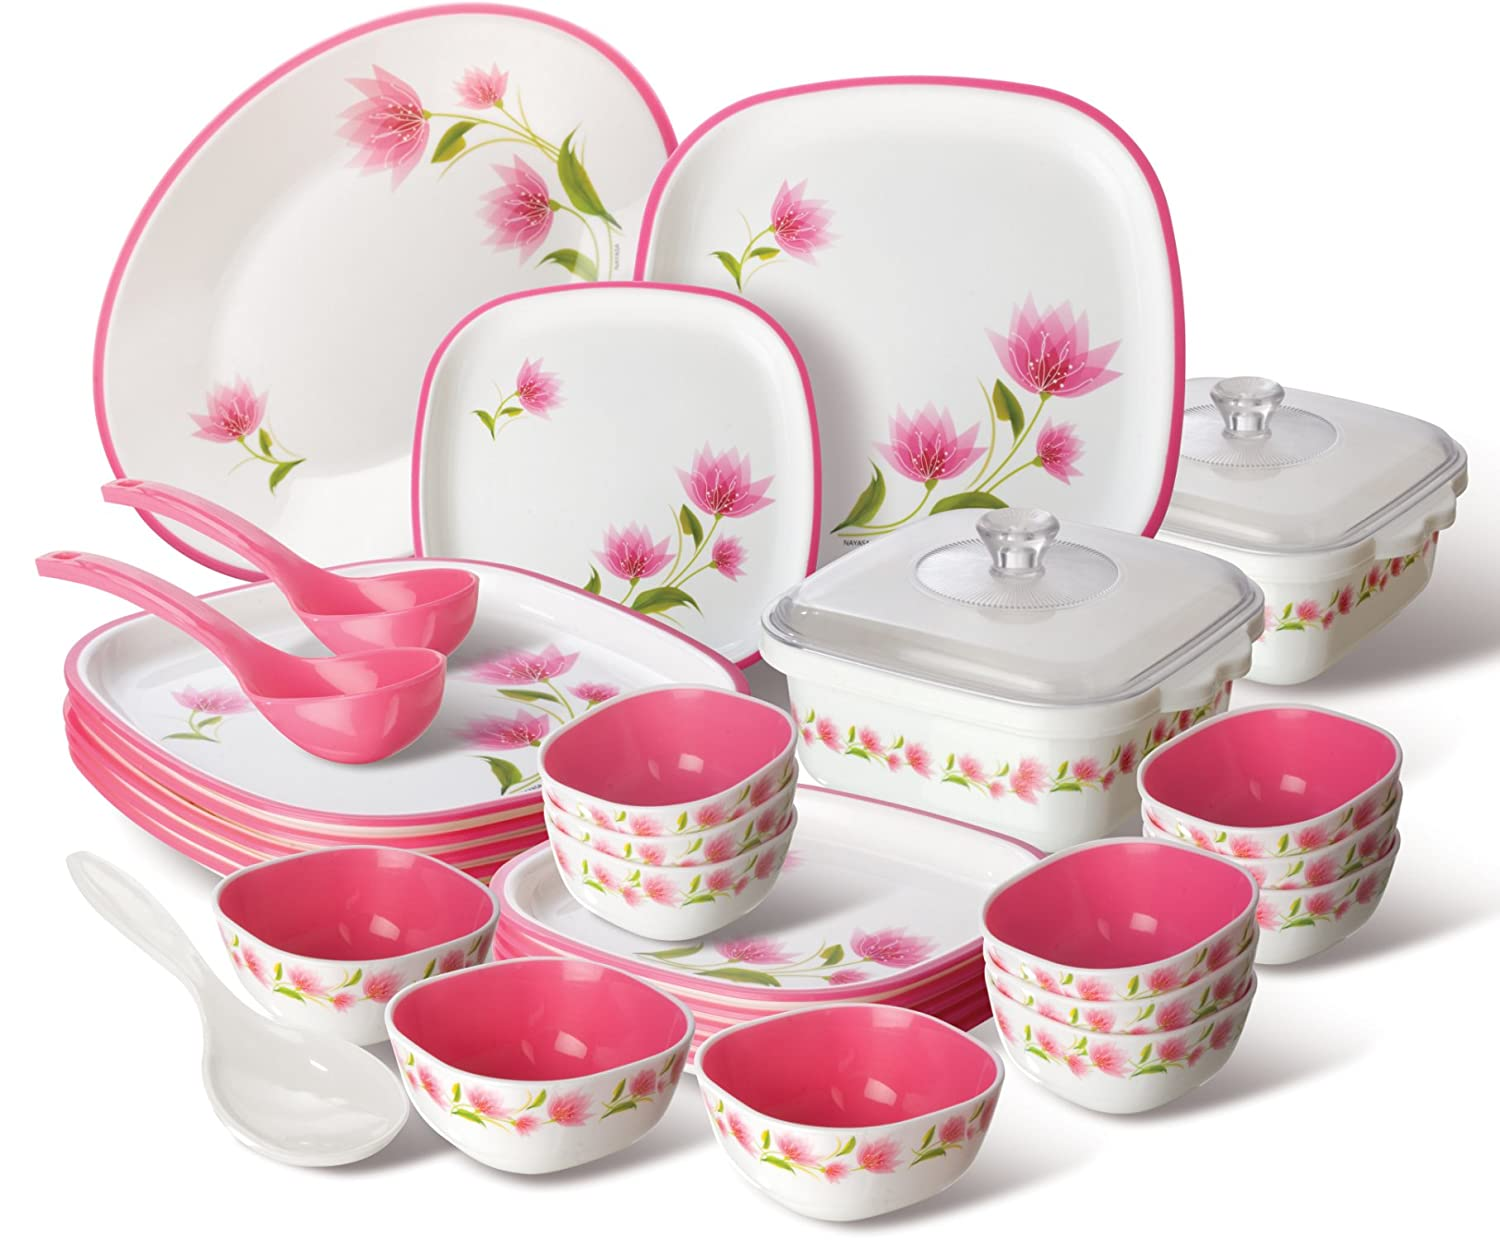 Kitchen Serveware Sets